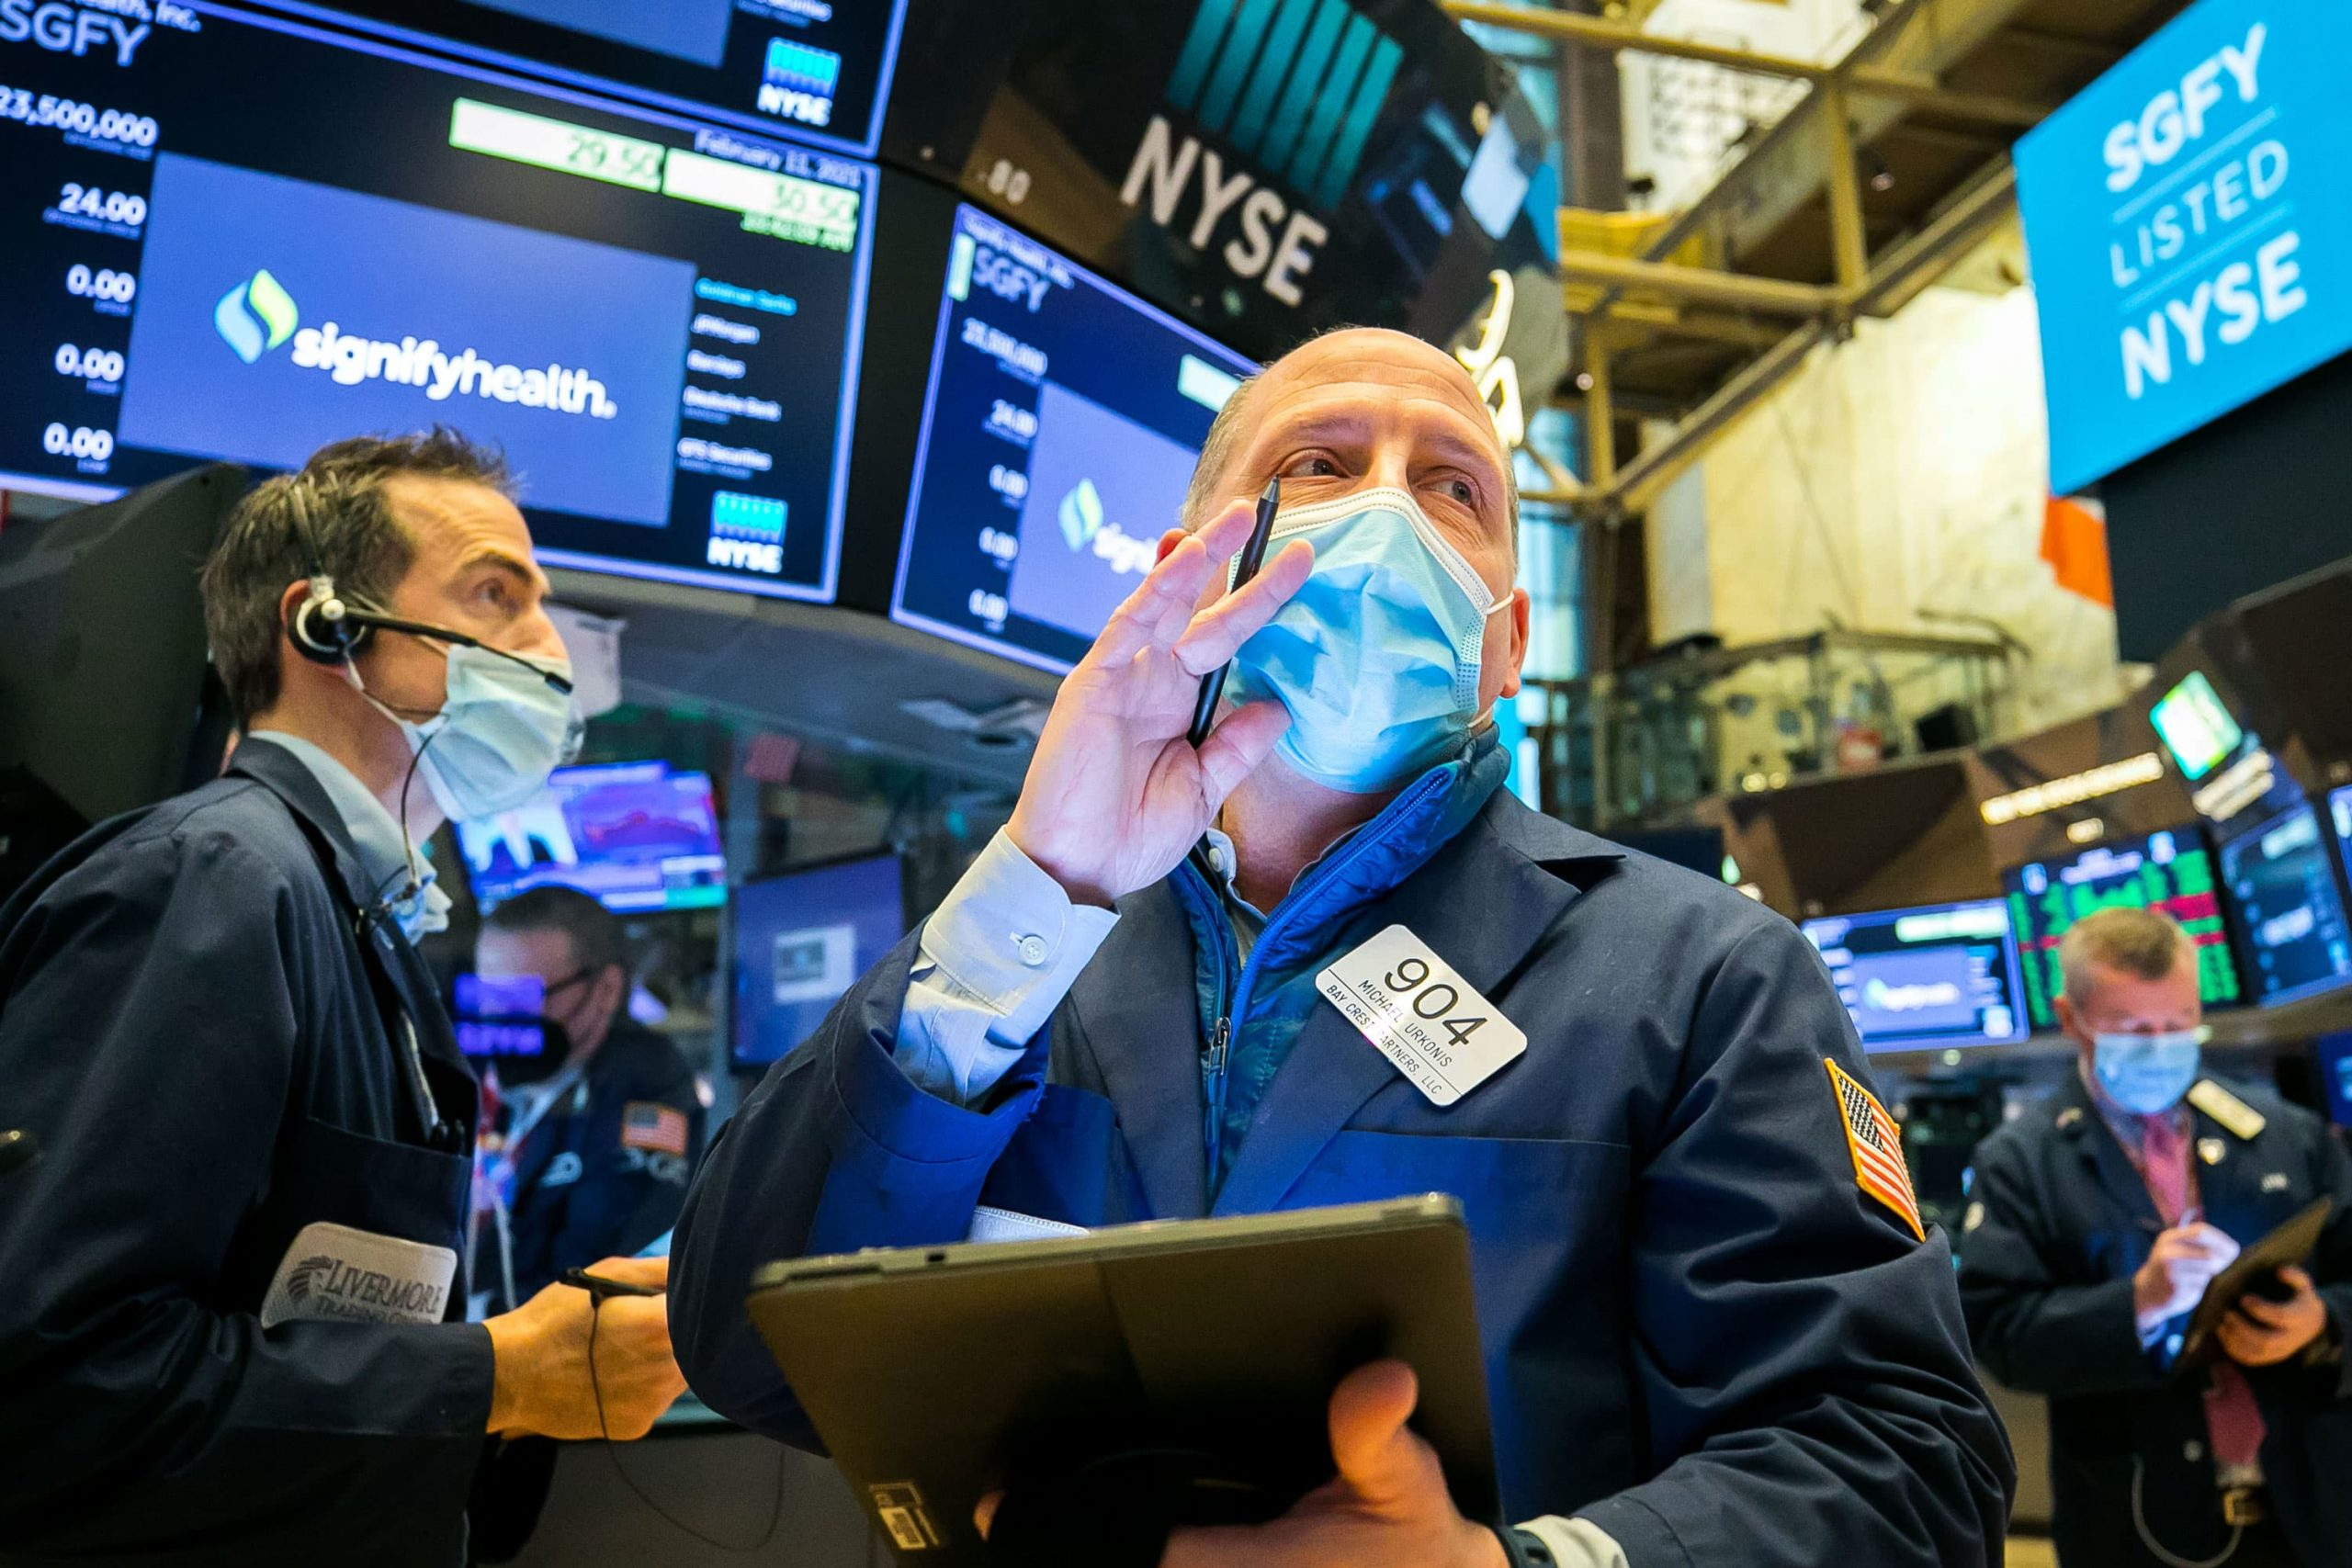 S&P 500 jumps 1.5% Friday as Big Tech rebounds, but still posts a weekly loss